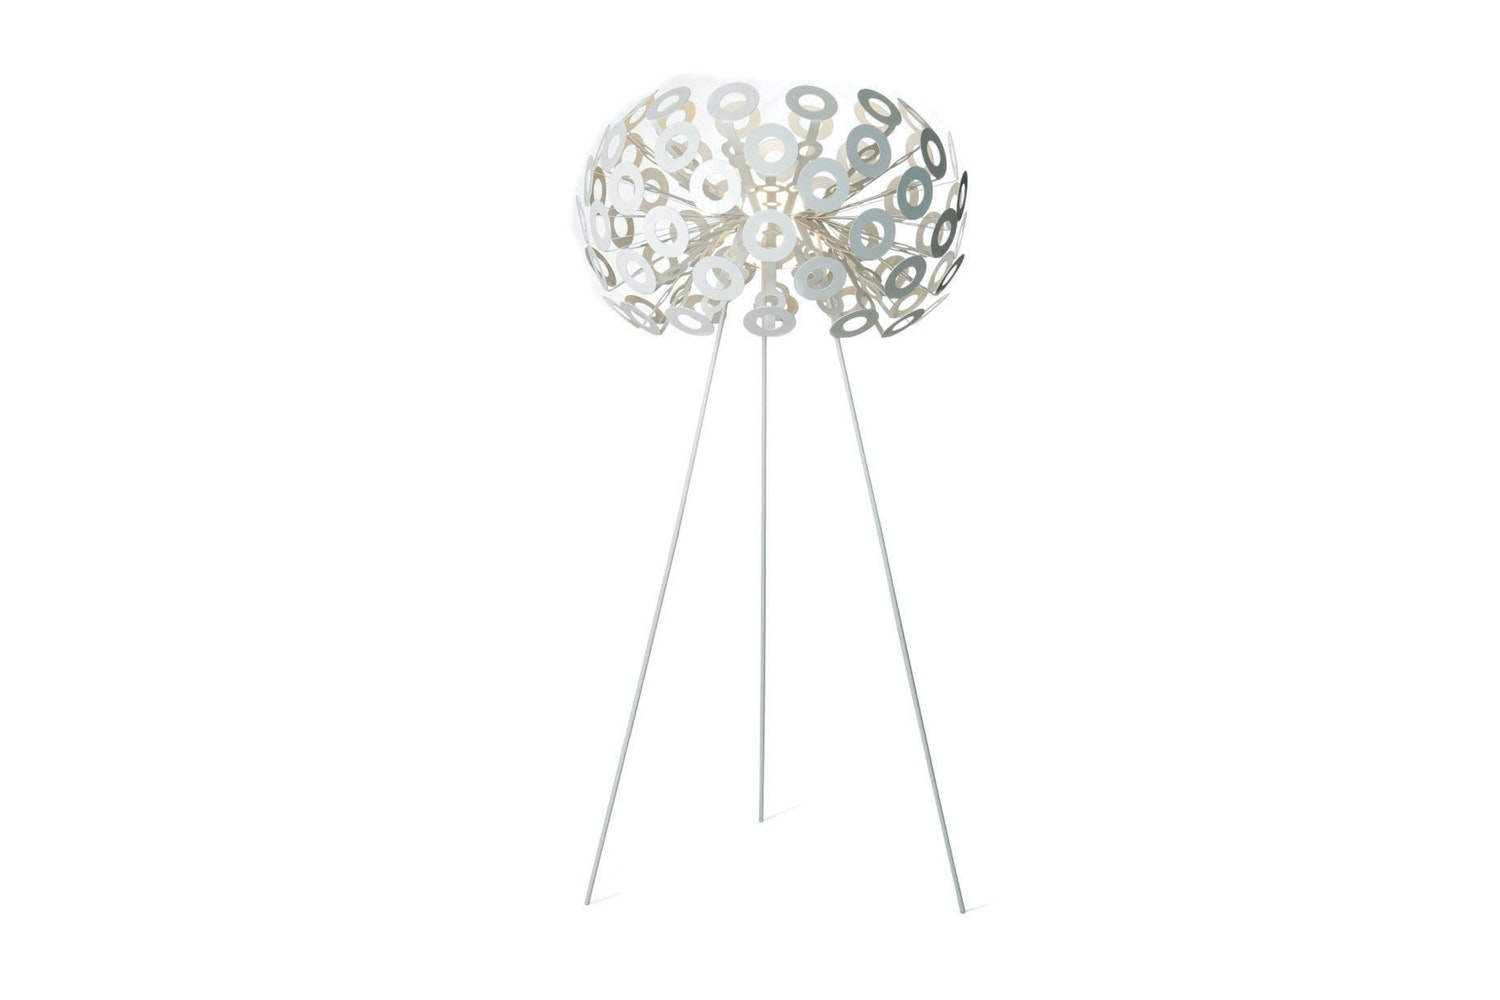 Dandelion Floor Lamp by Richard Hutten for Moooi